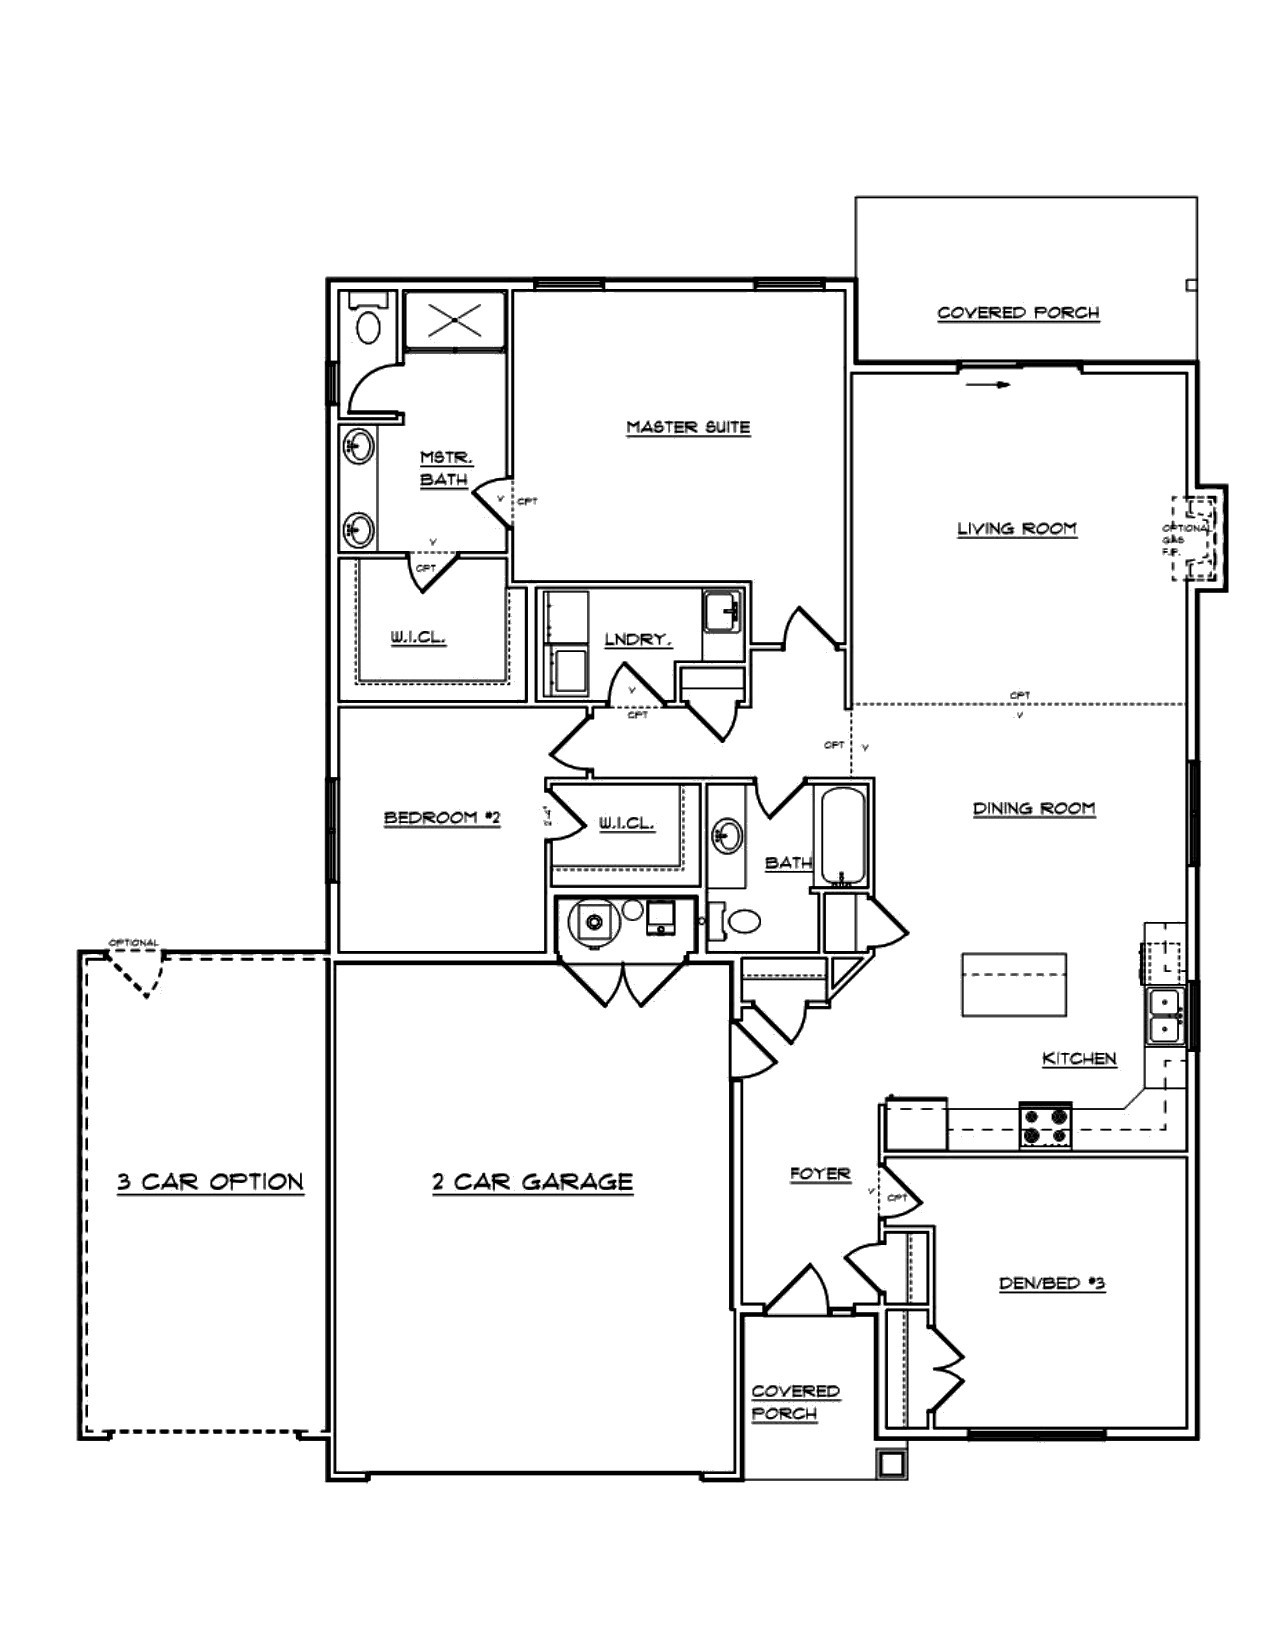 Plan 1802 aho northwest for Aho construction floor plans